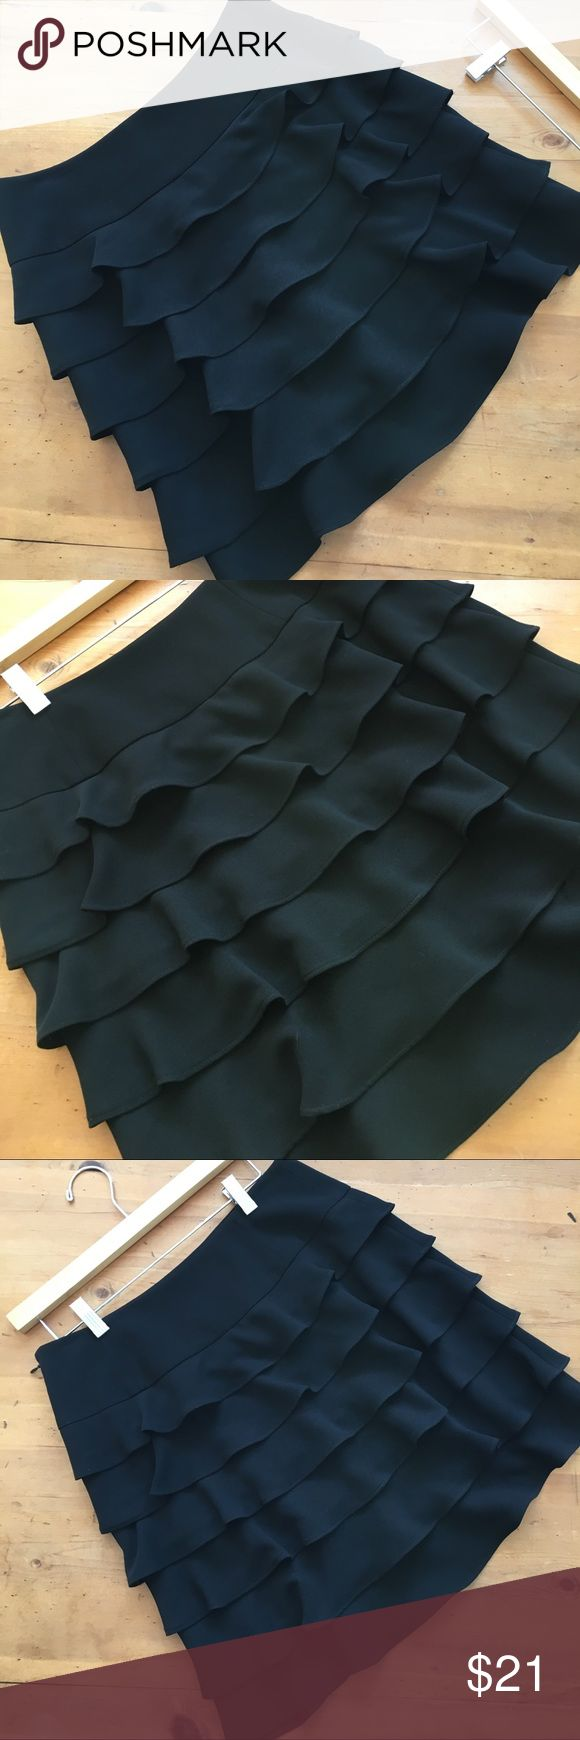 "INC Black Layered Ruffle Skirt Great condition super pretty wonderful basic or for a night out half zipper on side 14 1/2"" waist 19 "" long flat measurements size 6 no rips tears or stains non-smoking home INC International Concepts Skirts"